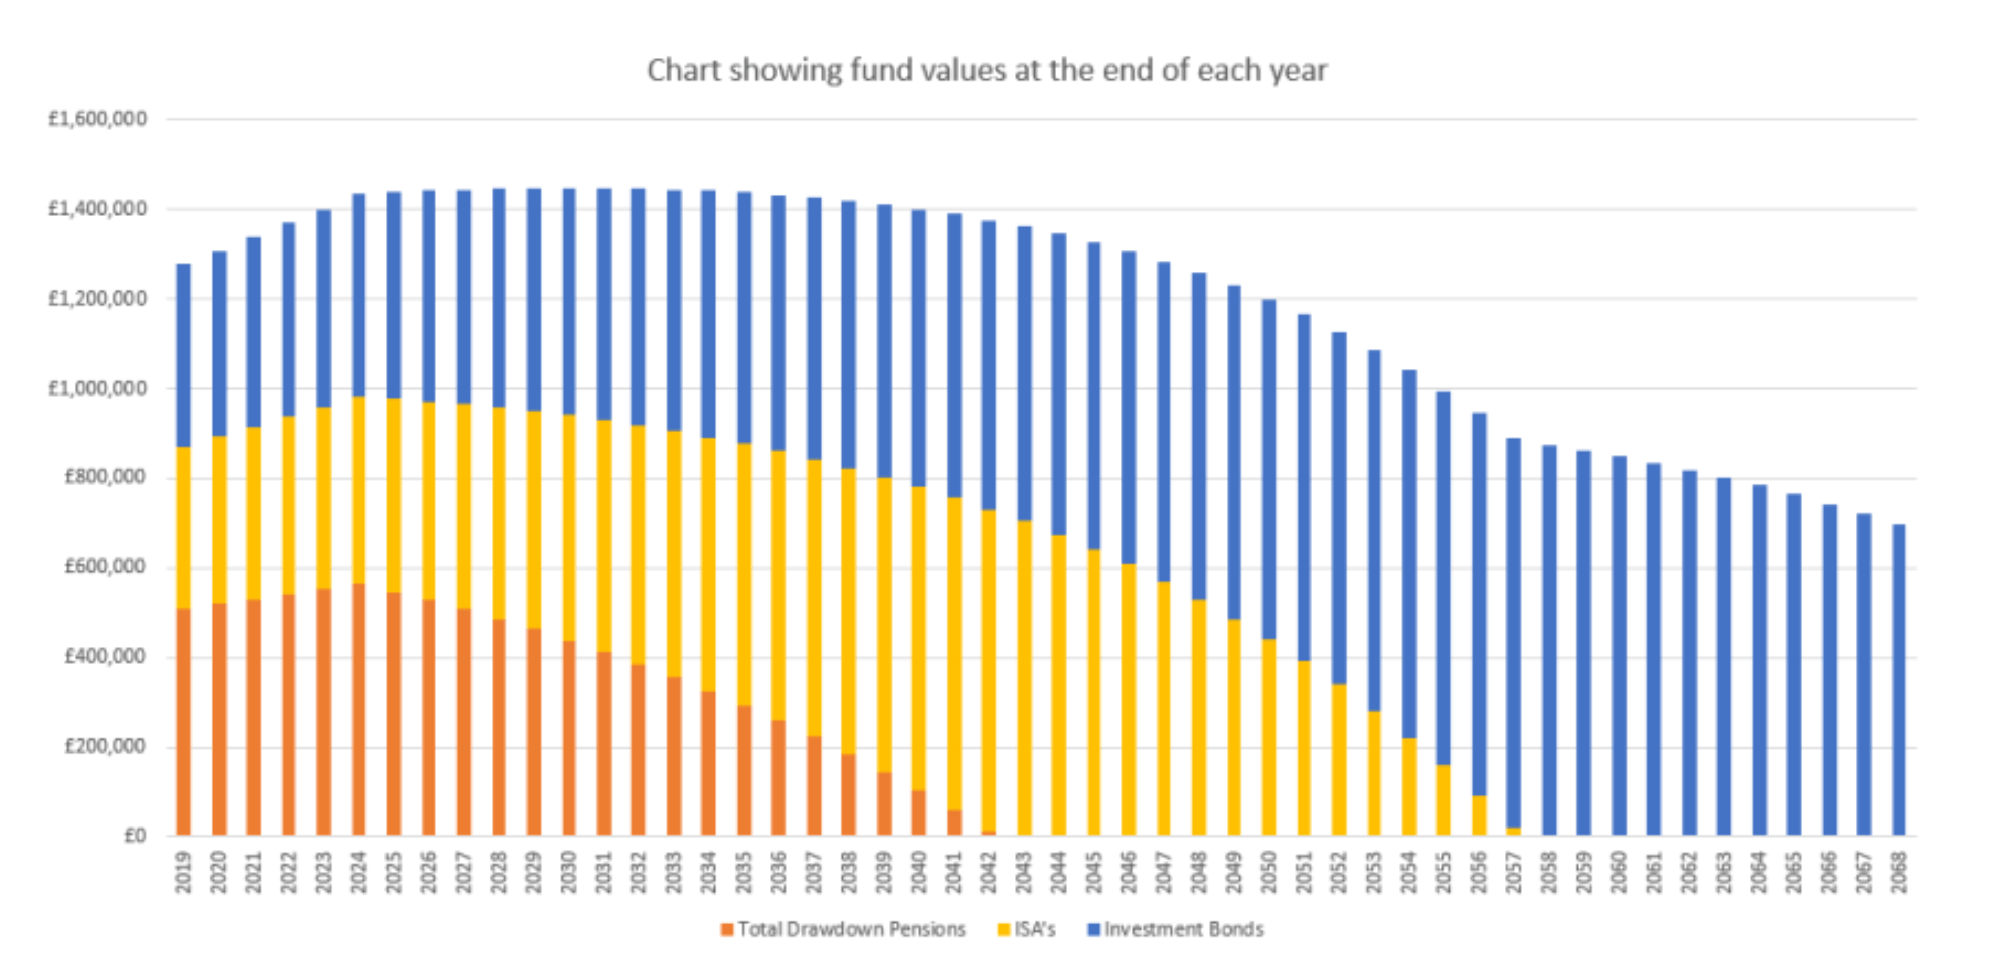 chart-showing-fund-values-at-the-end-of-each-year